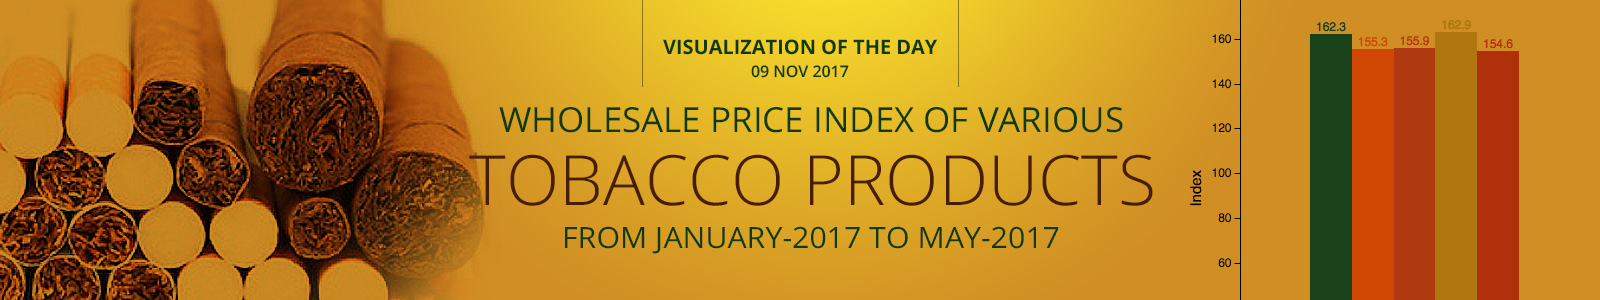 Wholesale Price Index of various Tobacco Products from